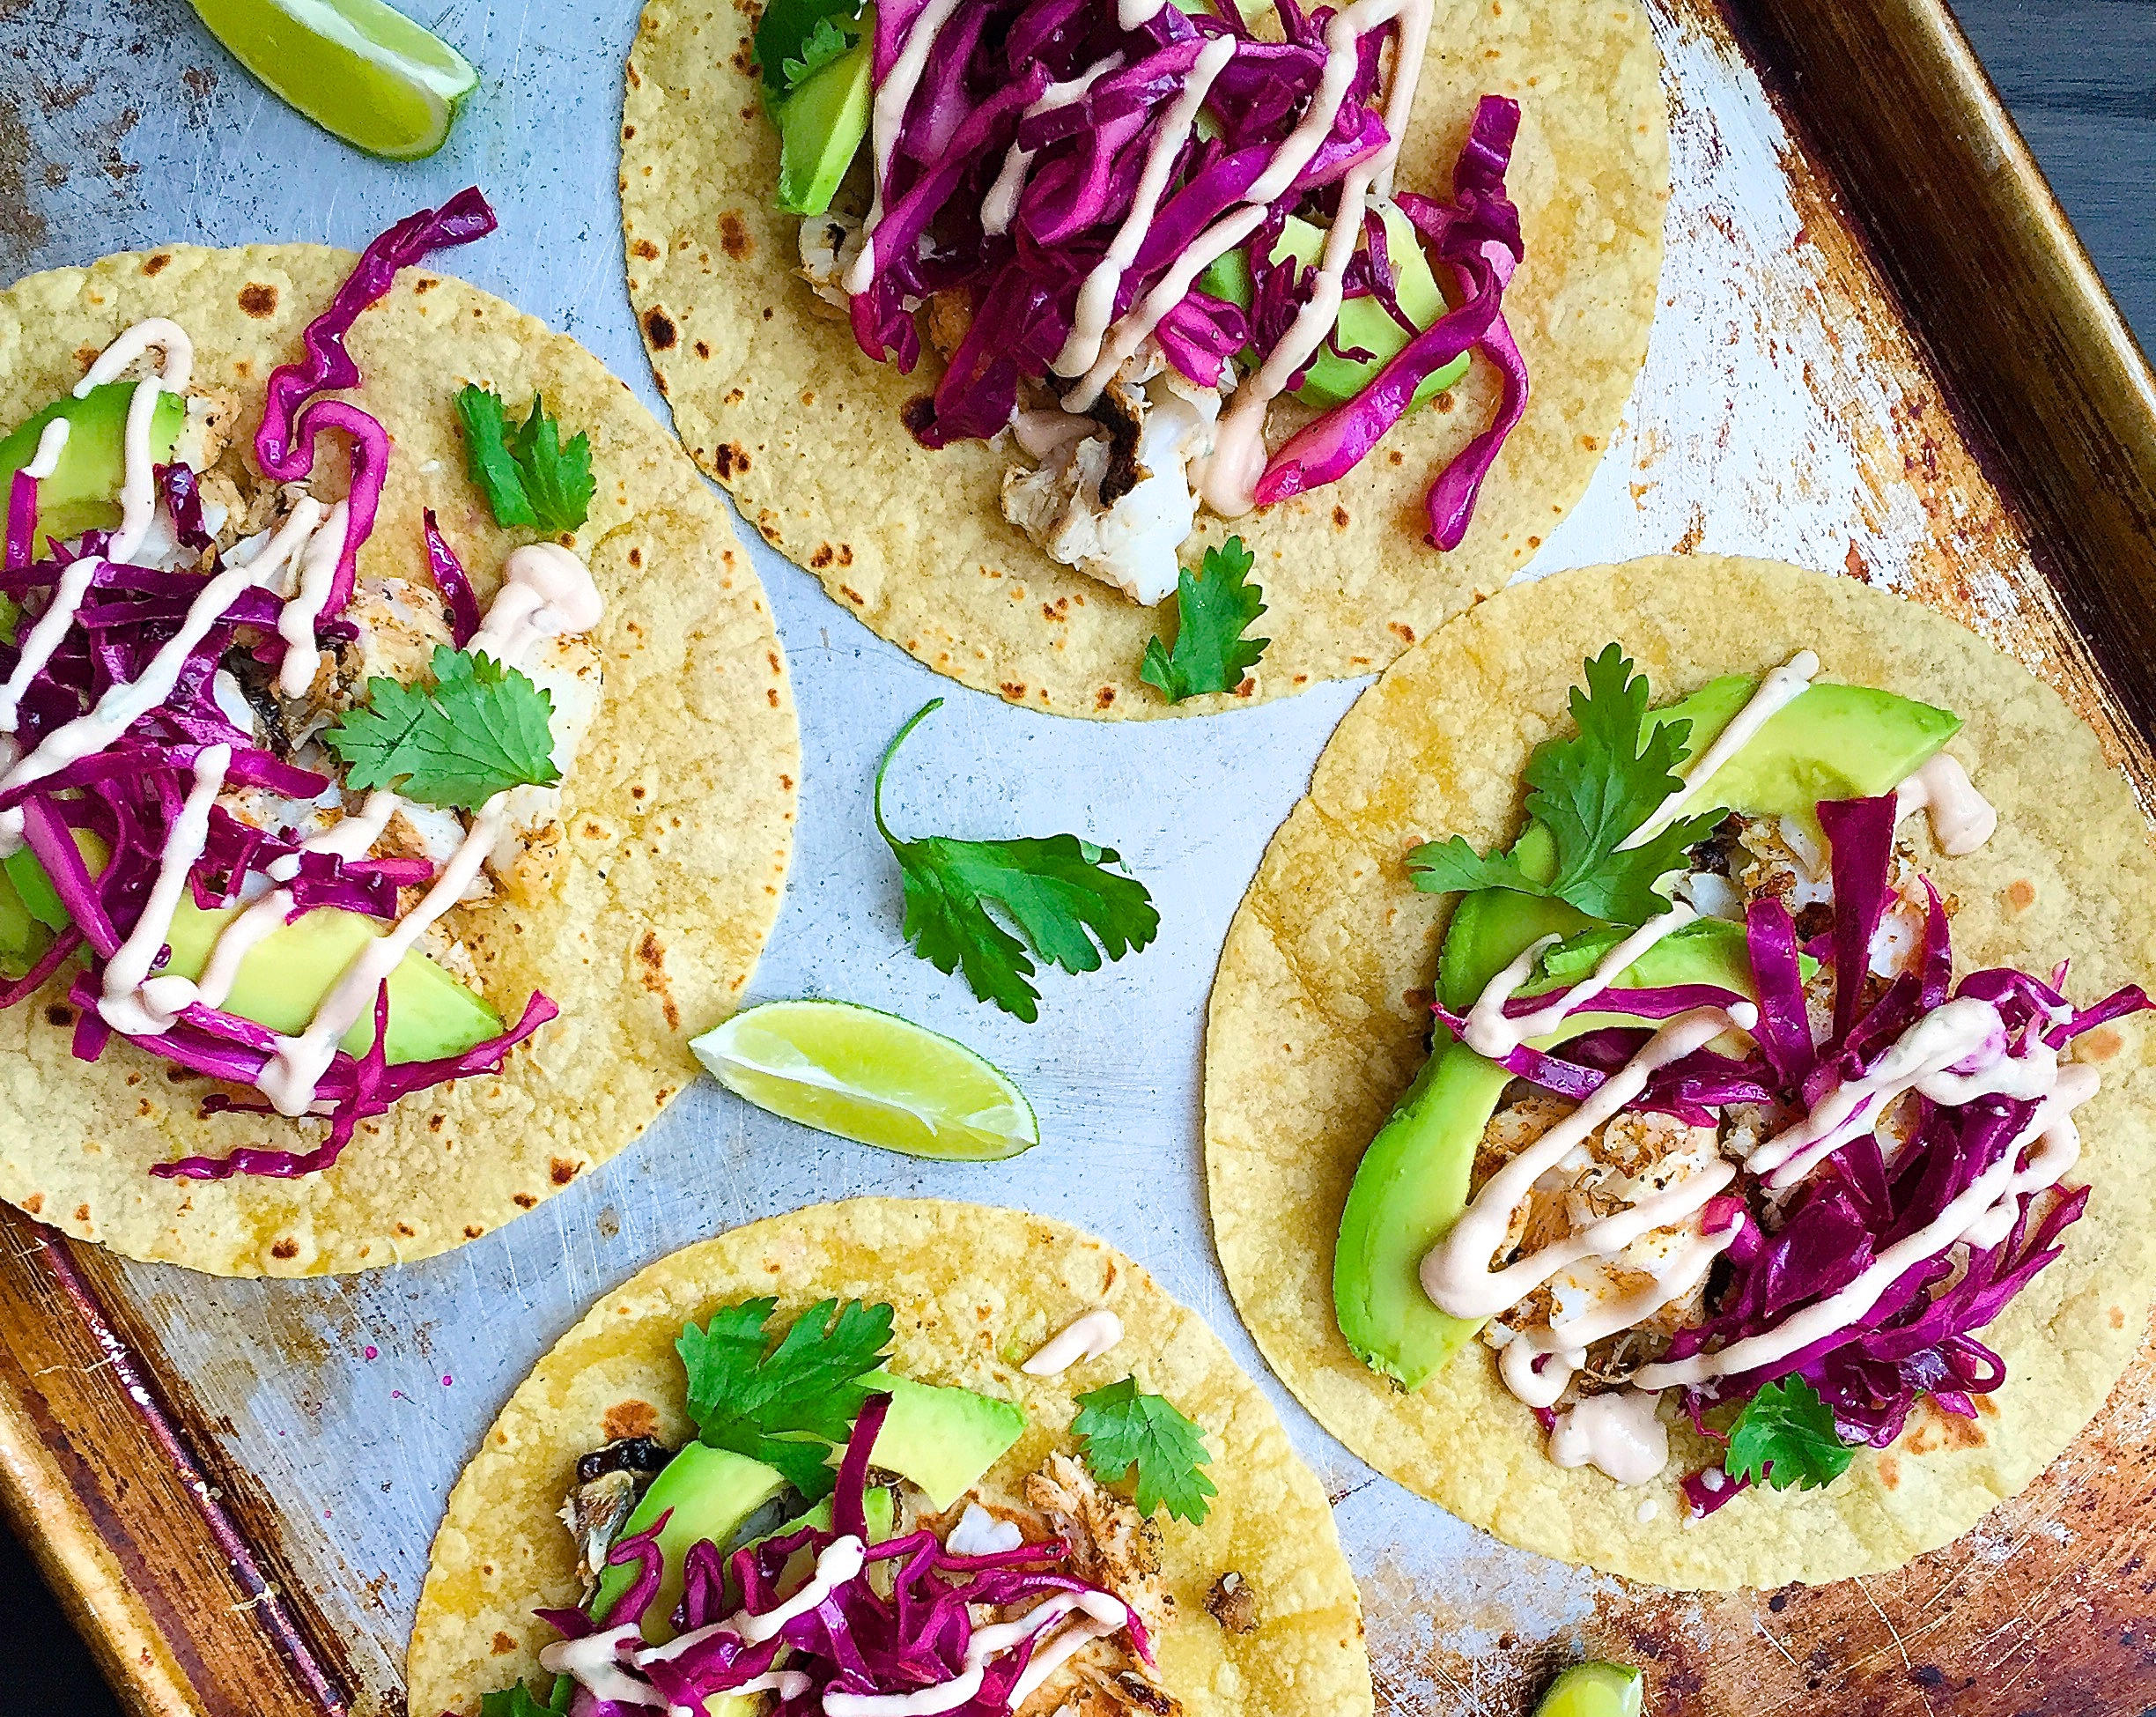 15 Easy Fish Taco Recipes - How to Make Fish Tacos—Delish.com